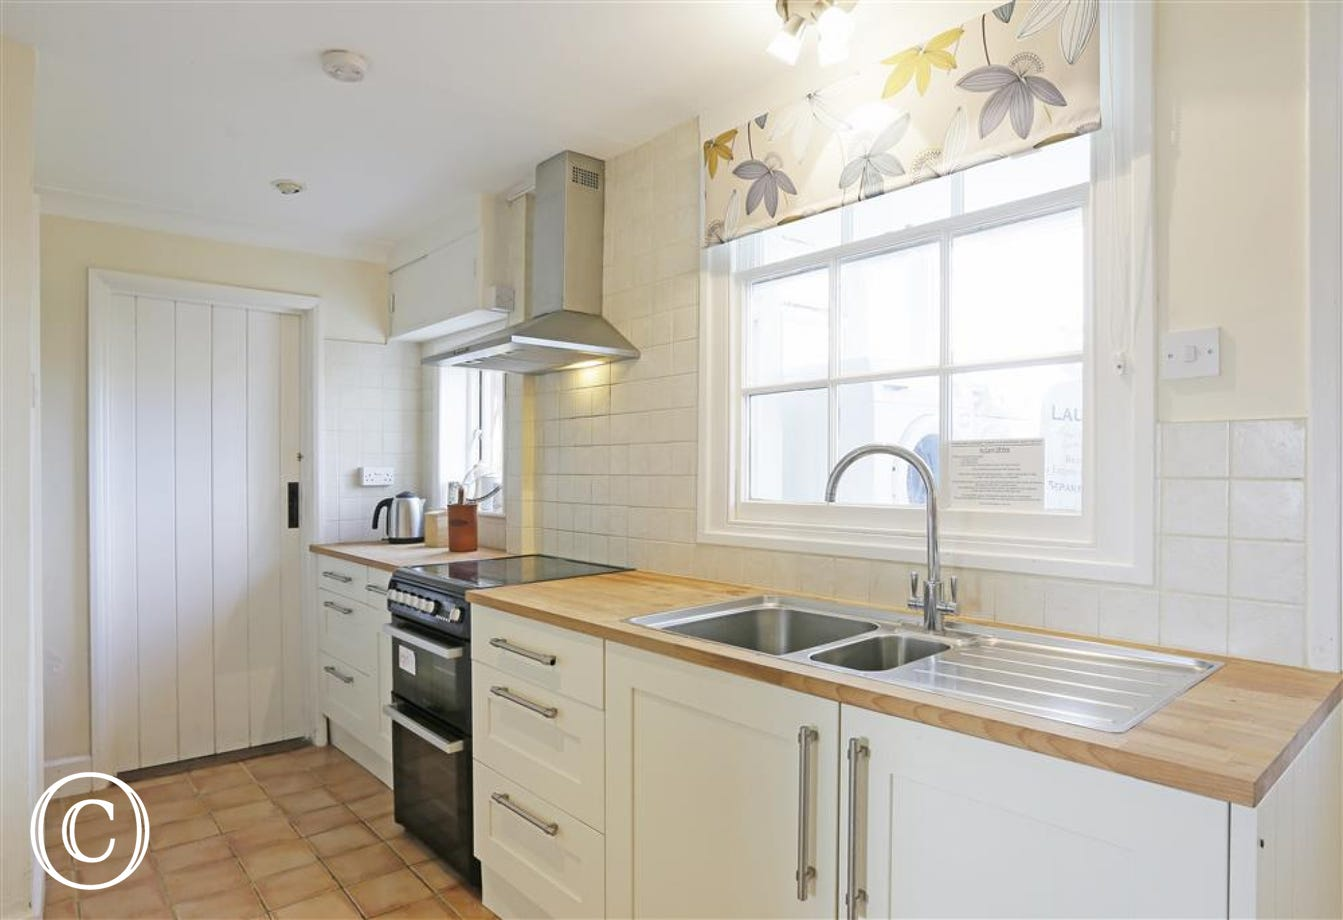 The kitchen is light and airy with views over the common